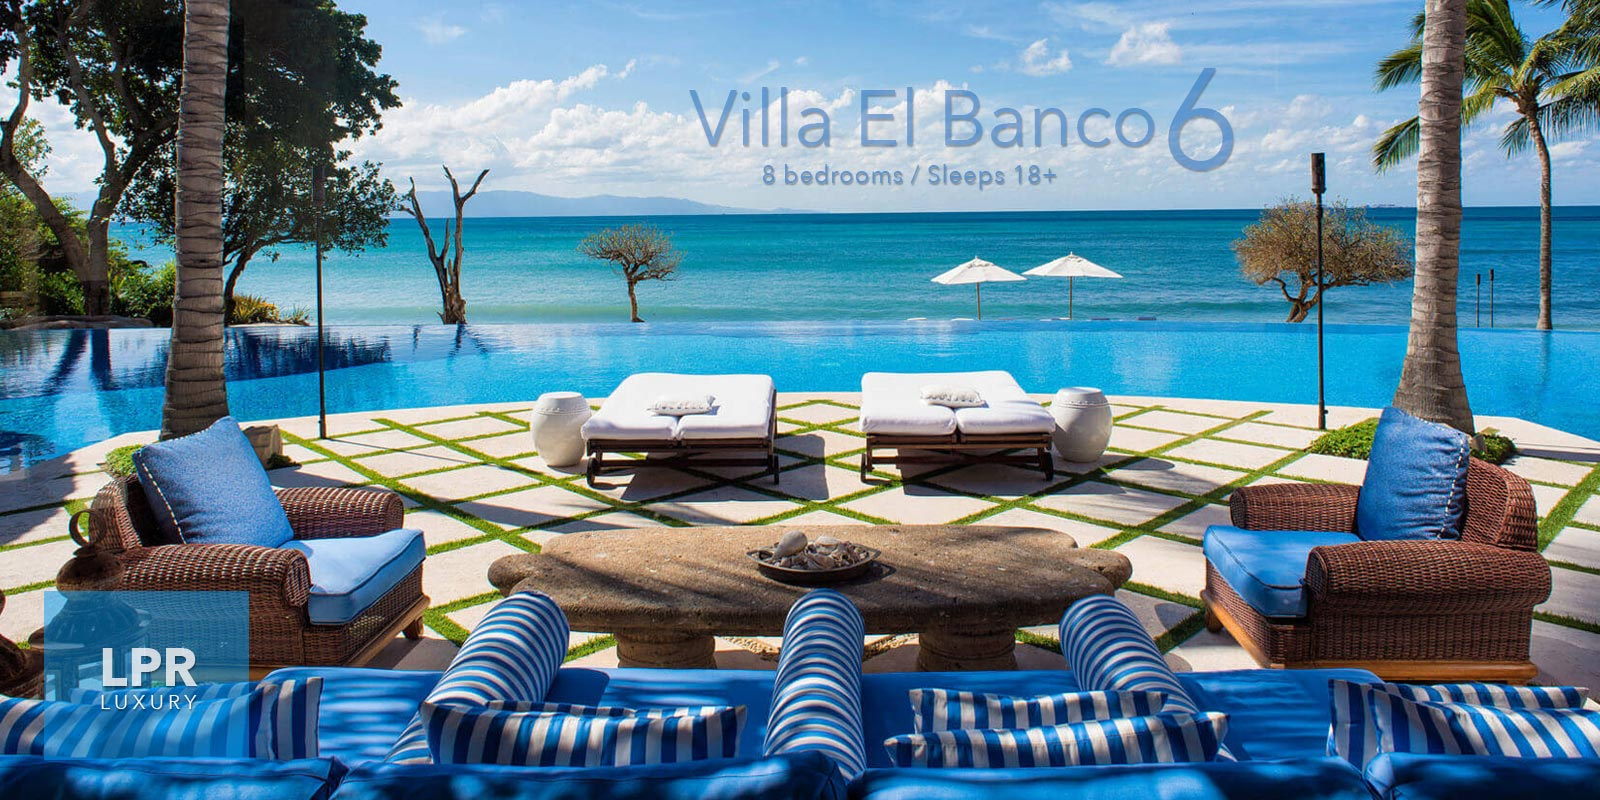 Villa El Banco 6 - Punta de Mita Ultra Luxury vacation rental villa - Riviera Nayarit, Mexico